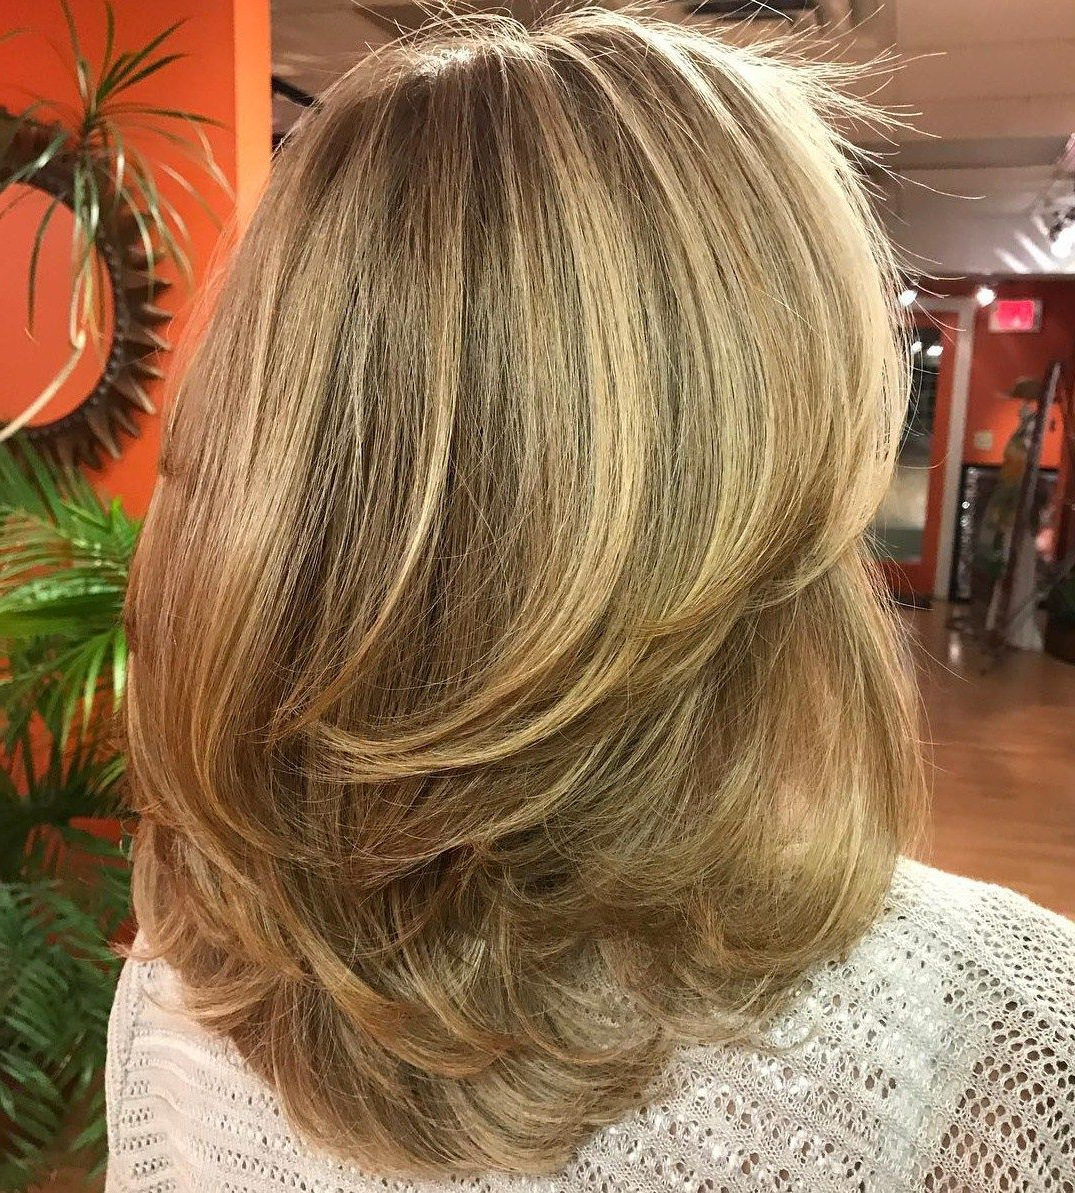 Most Recent Mid Back Brown U Shaped Haircuts With Swoopy Layers In Swoopy Layers For Mid Length Hair (View 5 of 20)